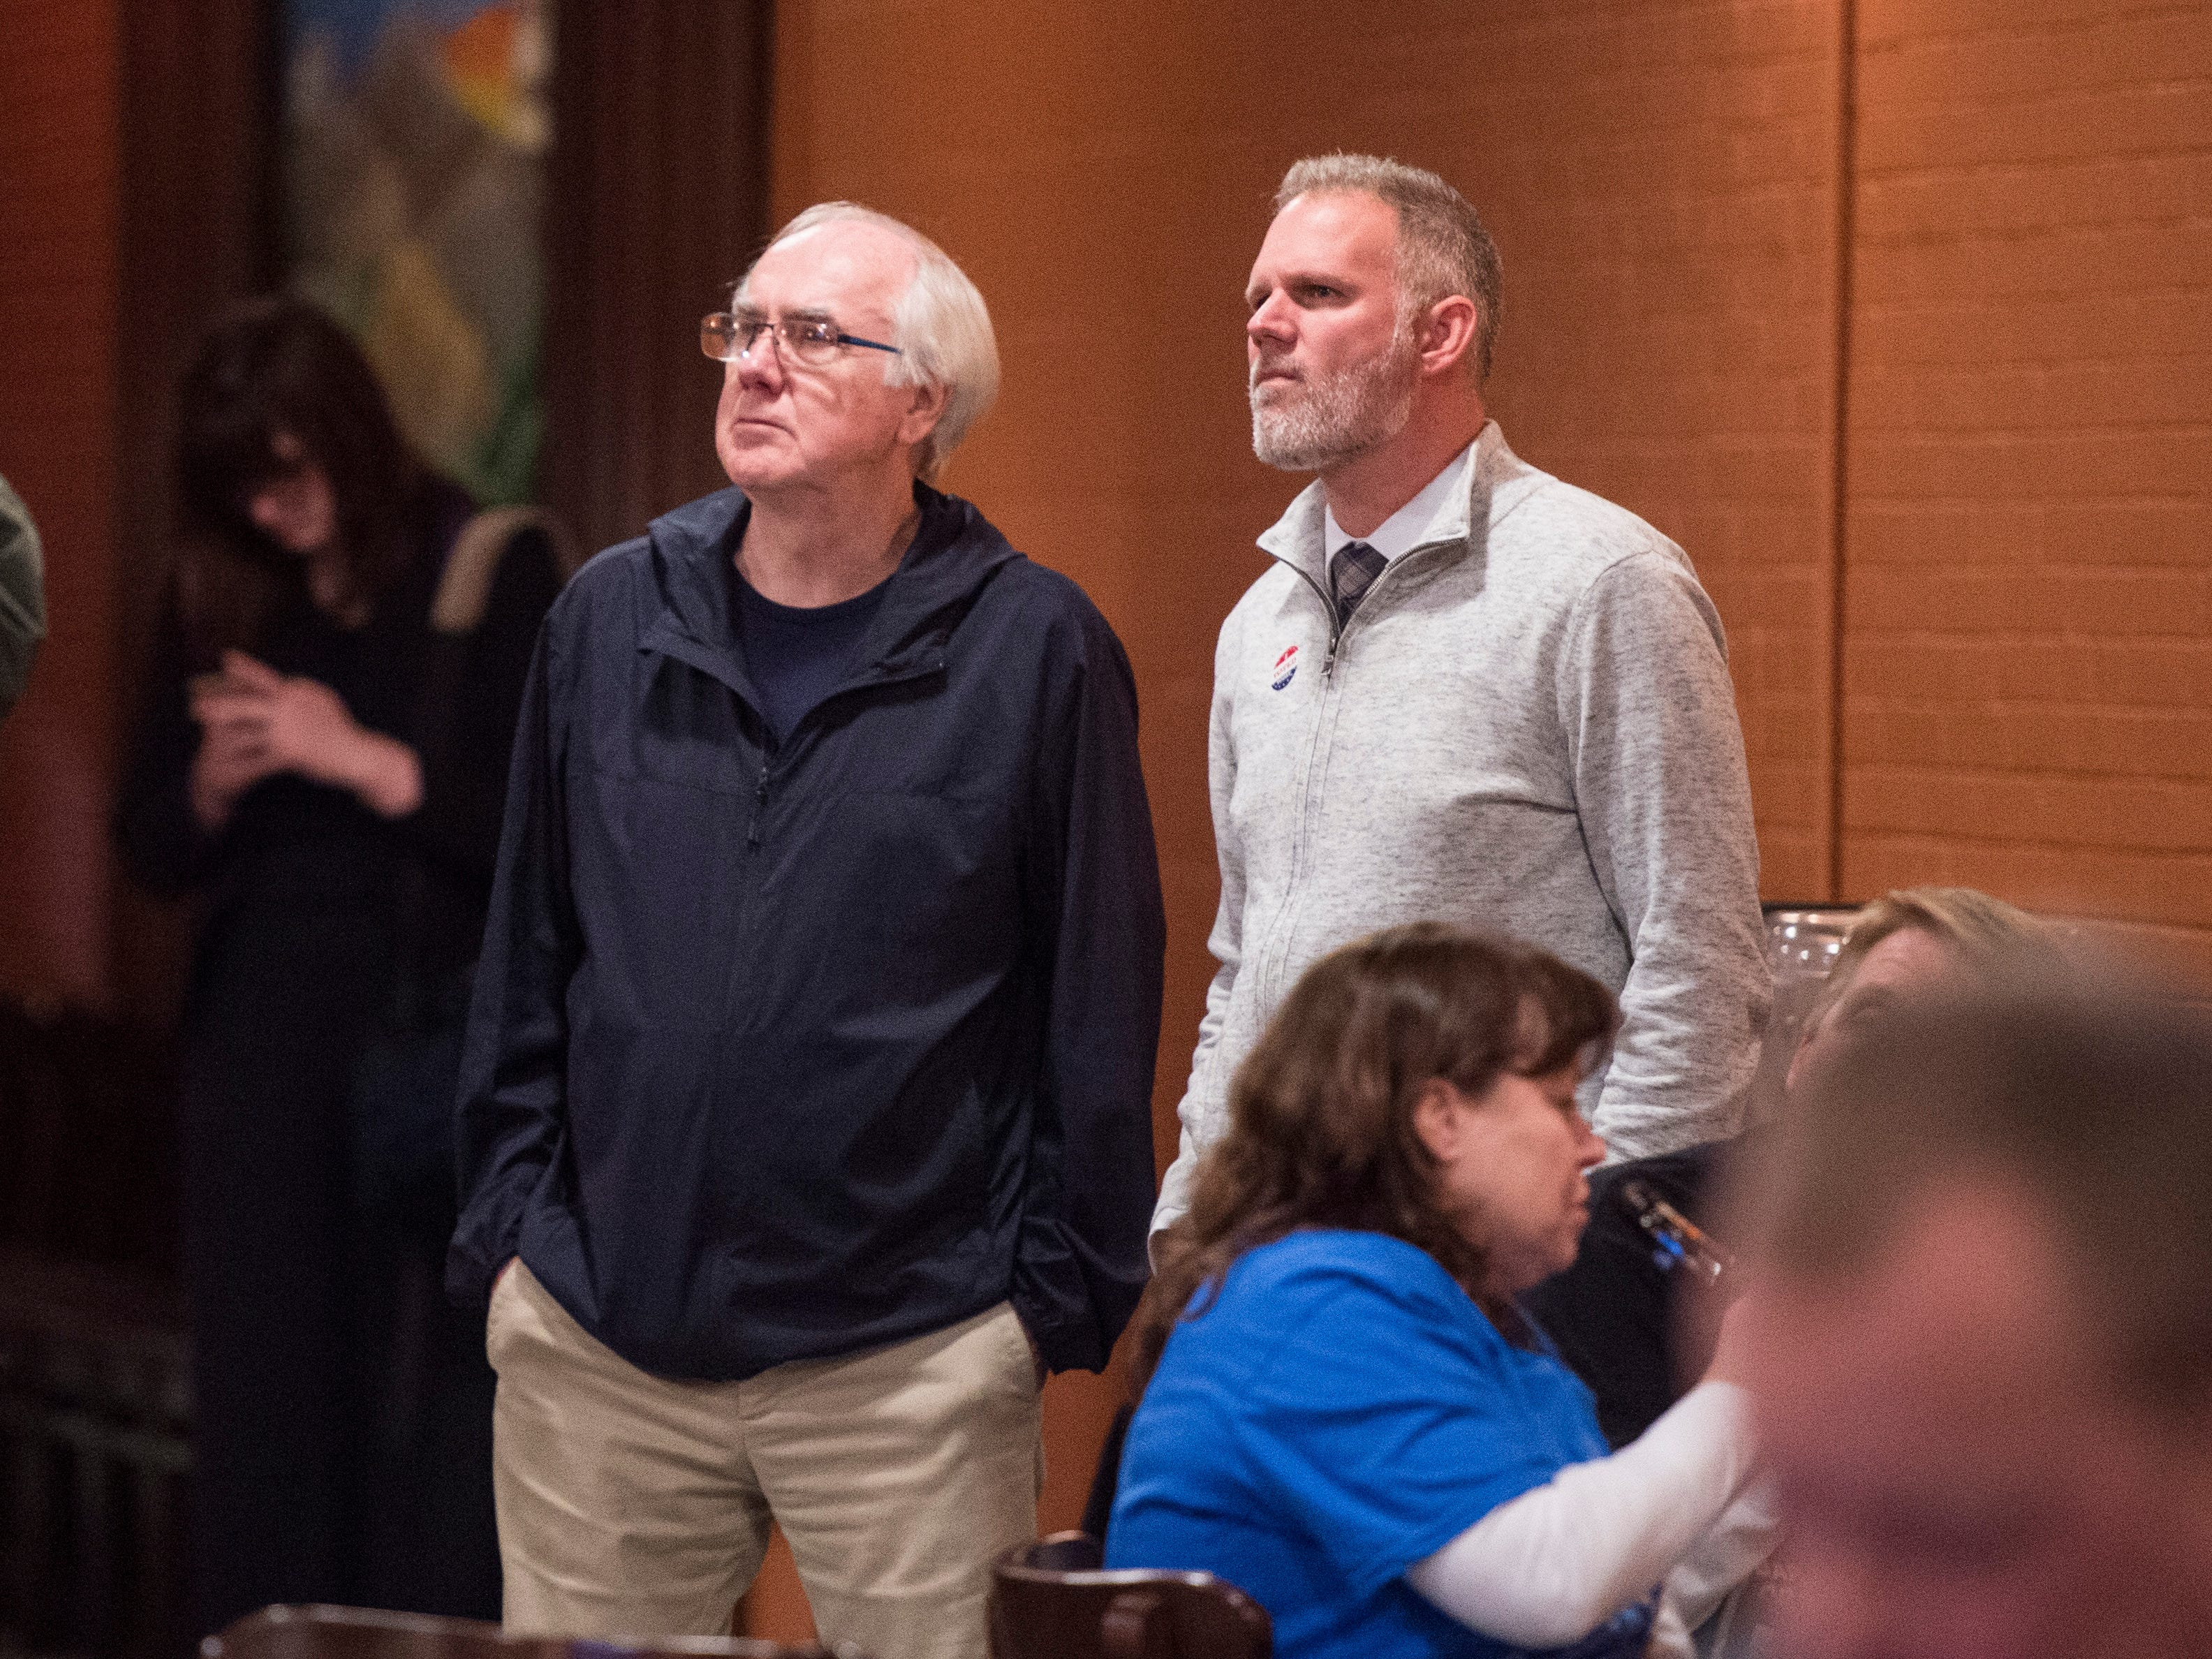 Dennis Avery, left, and Zachary Heronemus stare at the tv as the 2018 midterm elections results come in while attending the Vanderburgh County Democratic watch party held at DiLegge's Restaurant Tuesday Nov. 6, 2018.